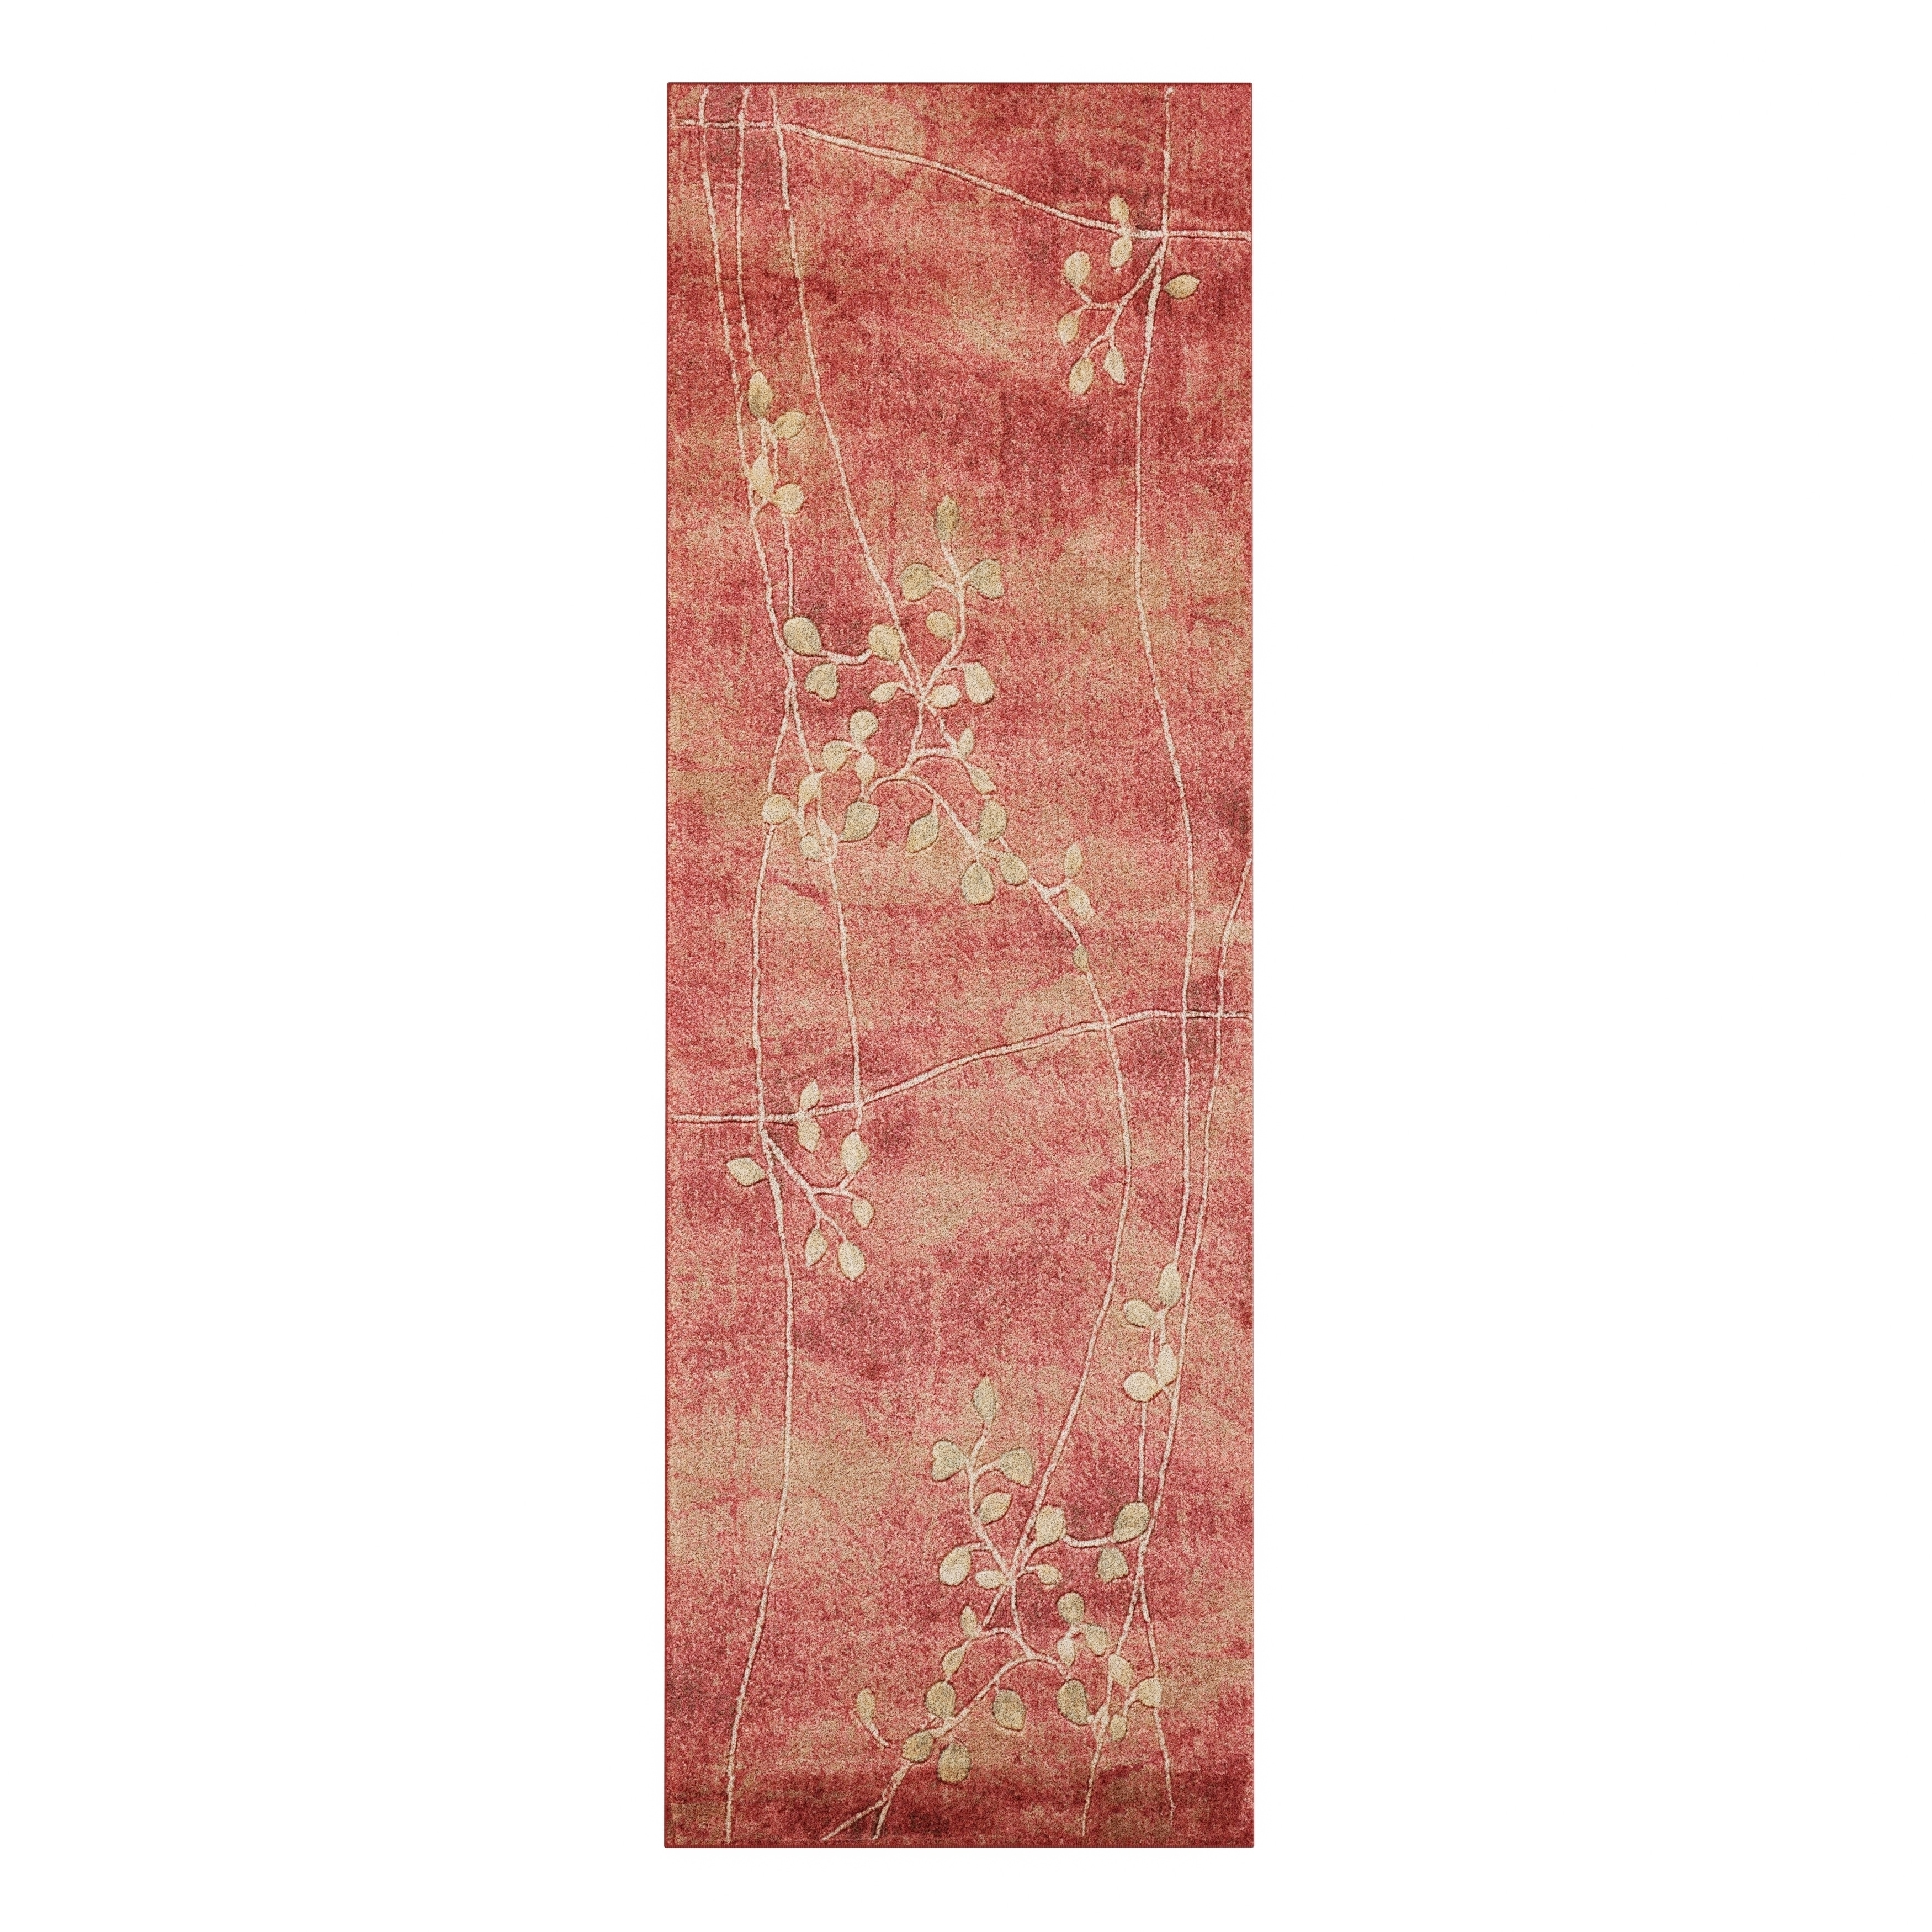 Yellow 6 X 9 Area Rugs Online At Our Best Deals